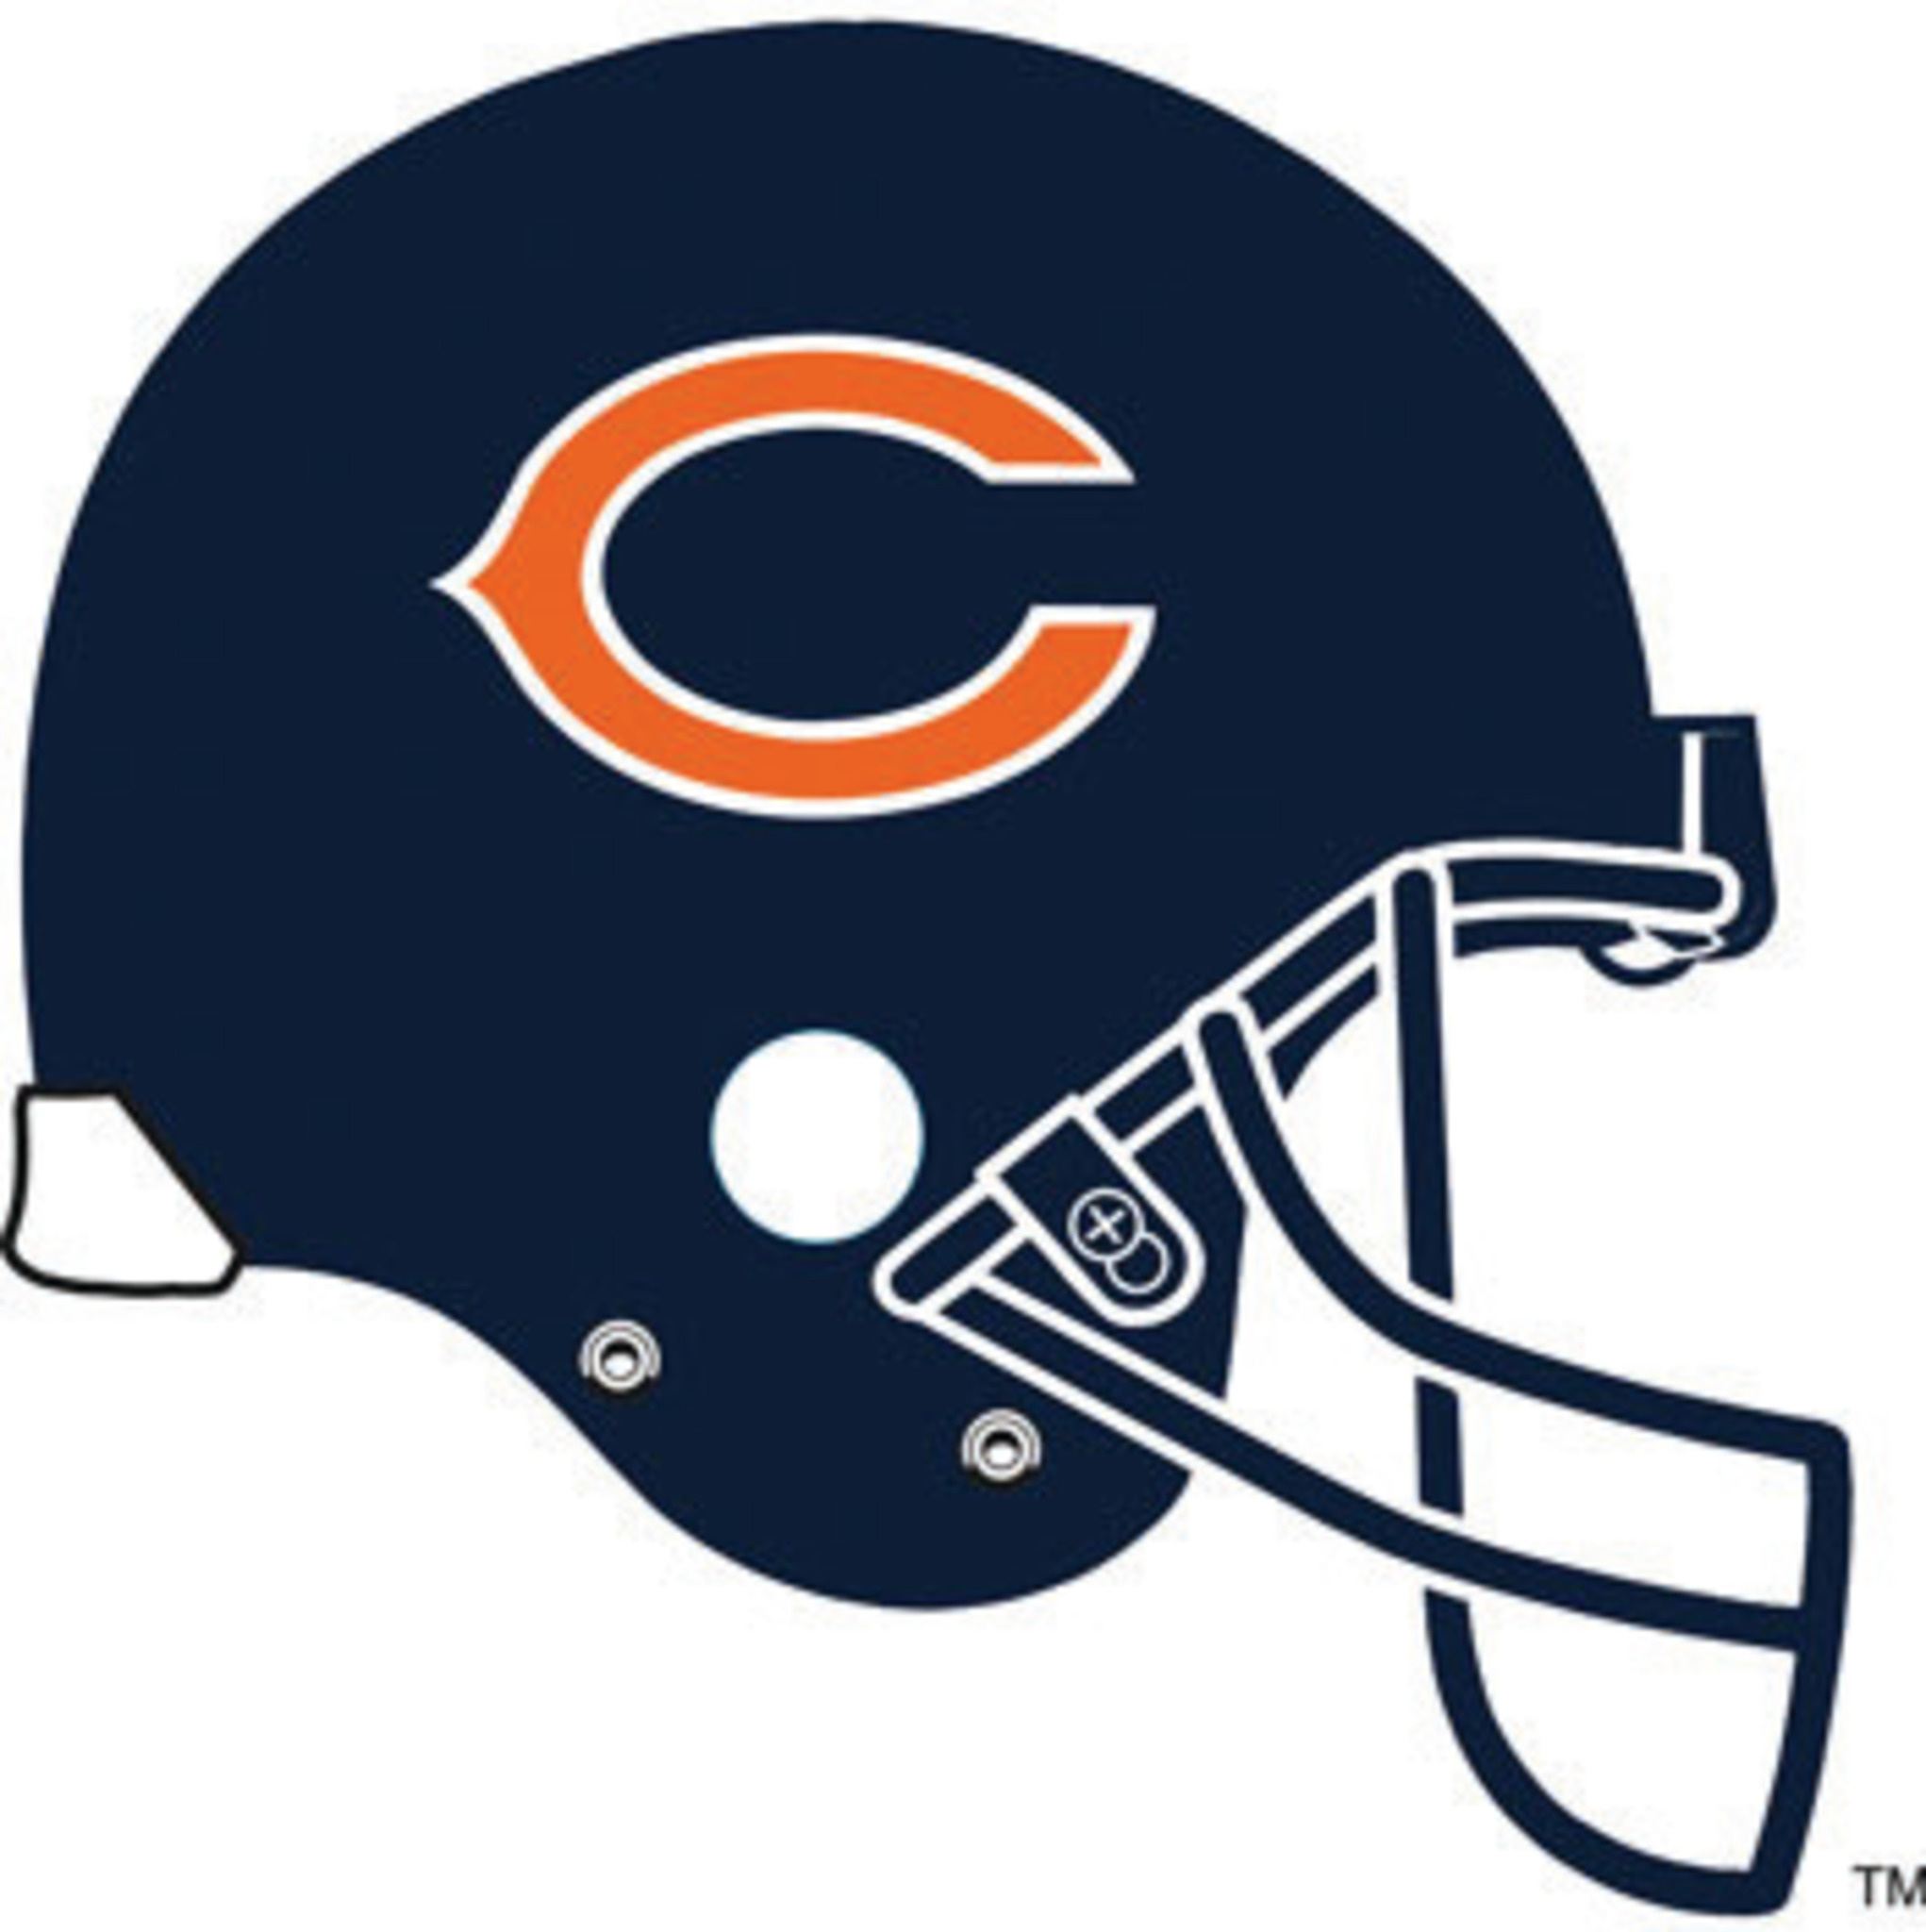 the chicago bears essays Chicago bears issue: a paragraph essay, so having a thesis with three topics to prove your stance is a good idea introduction and conclusion introduction should be concise and no longer than any body paragraph persuasive essay writing author.